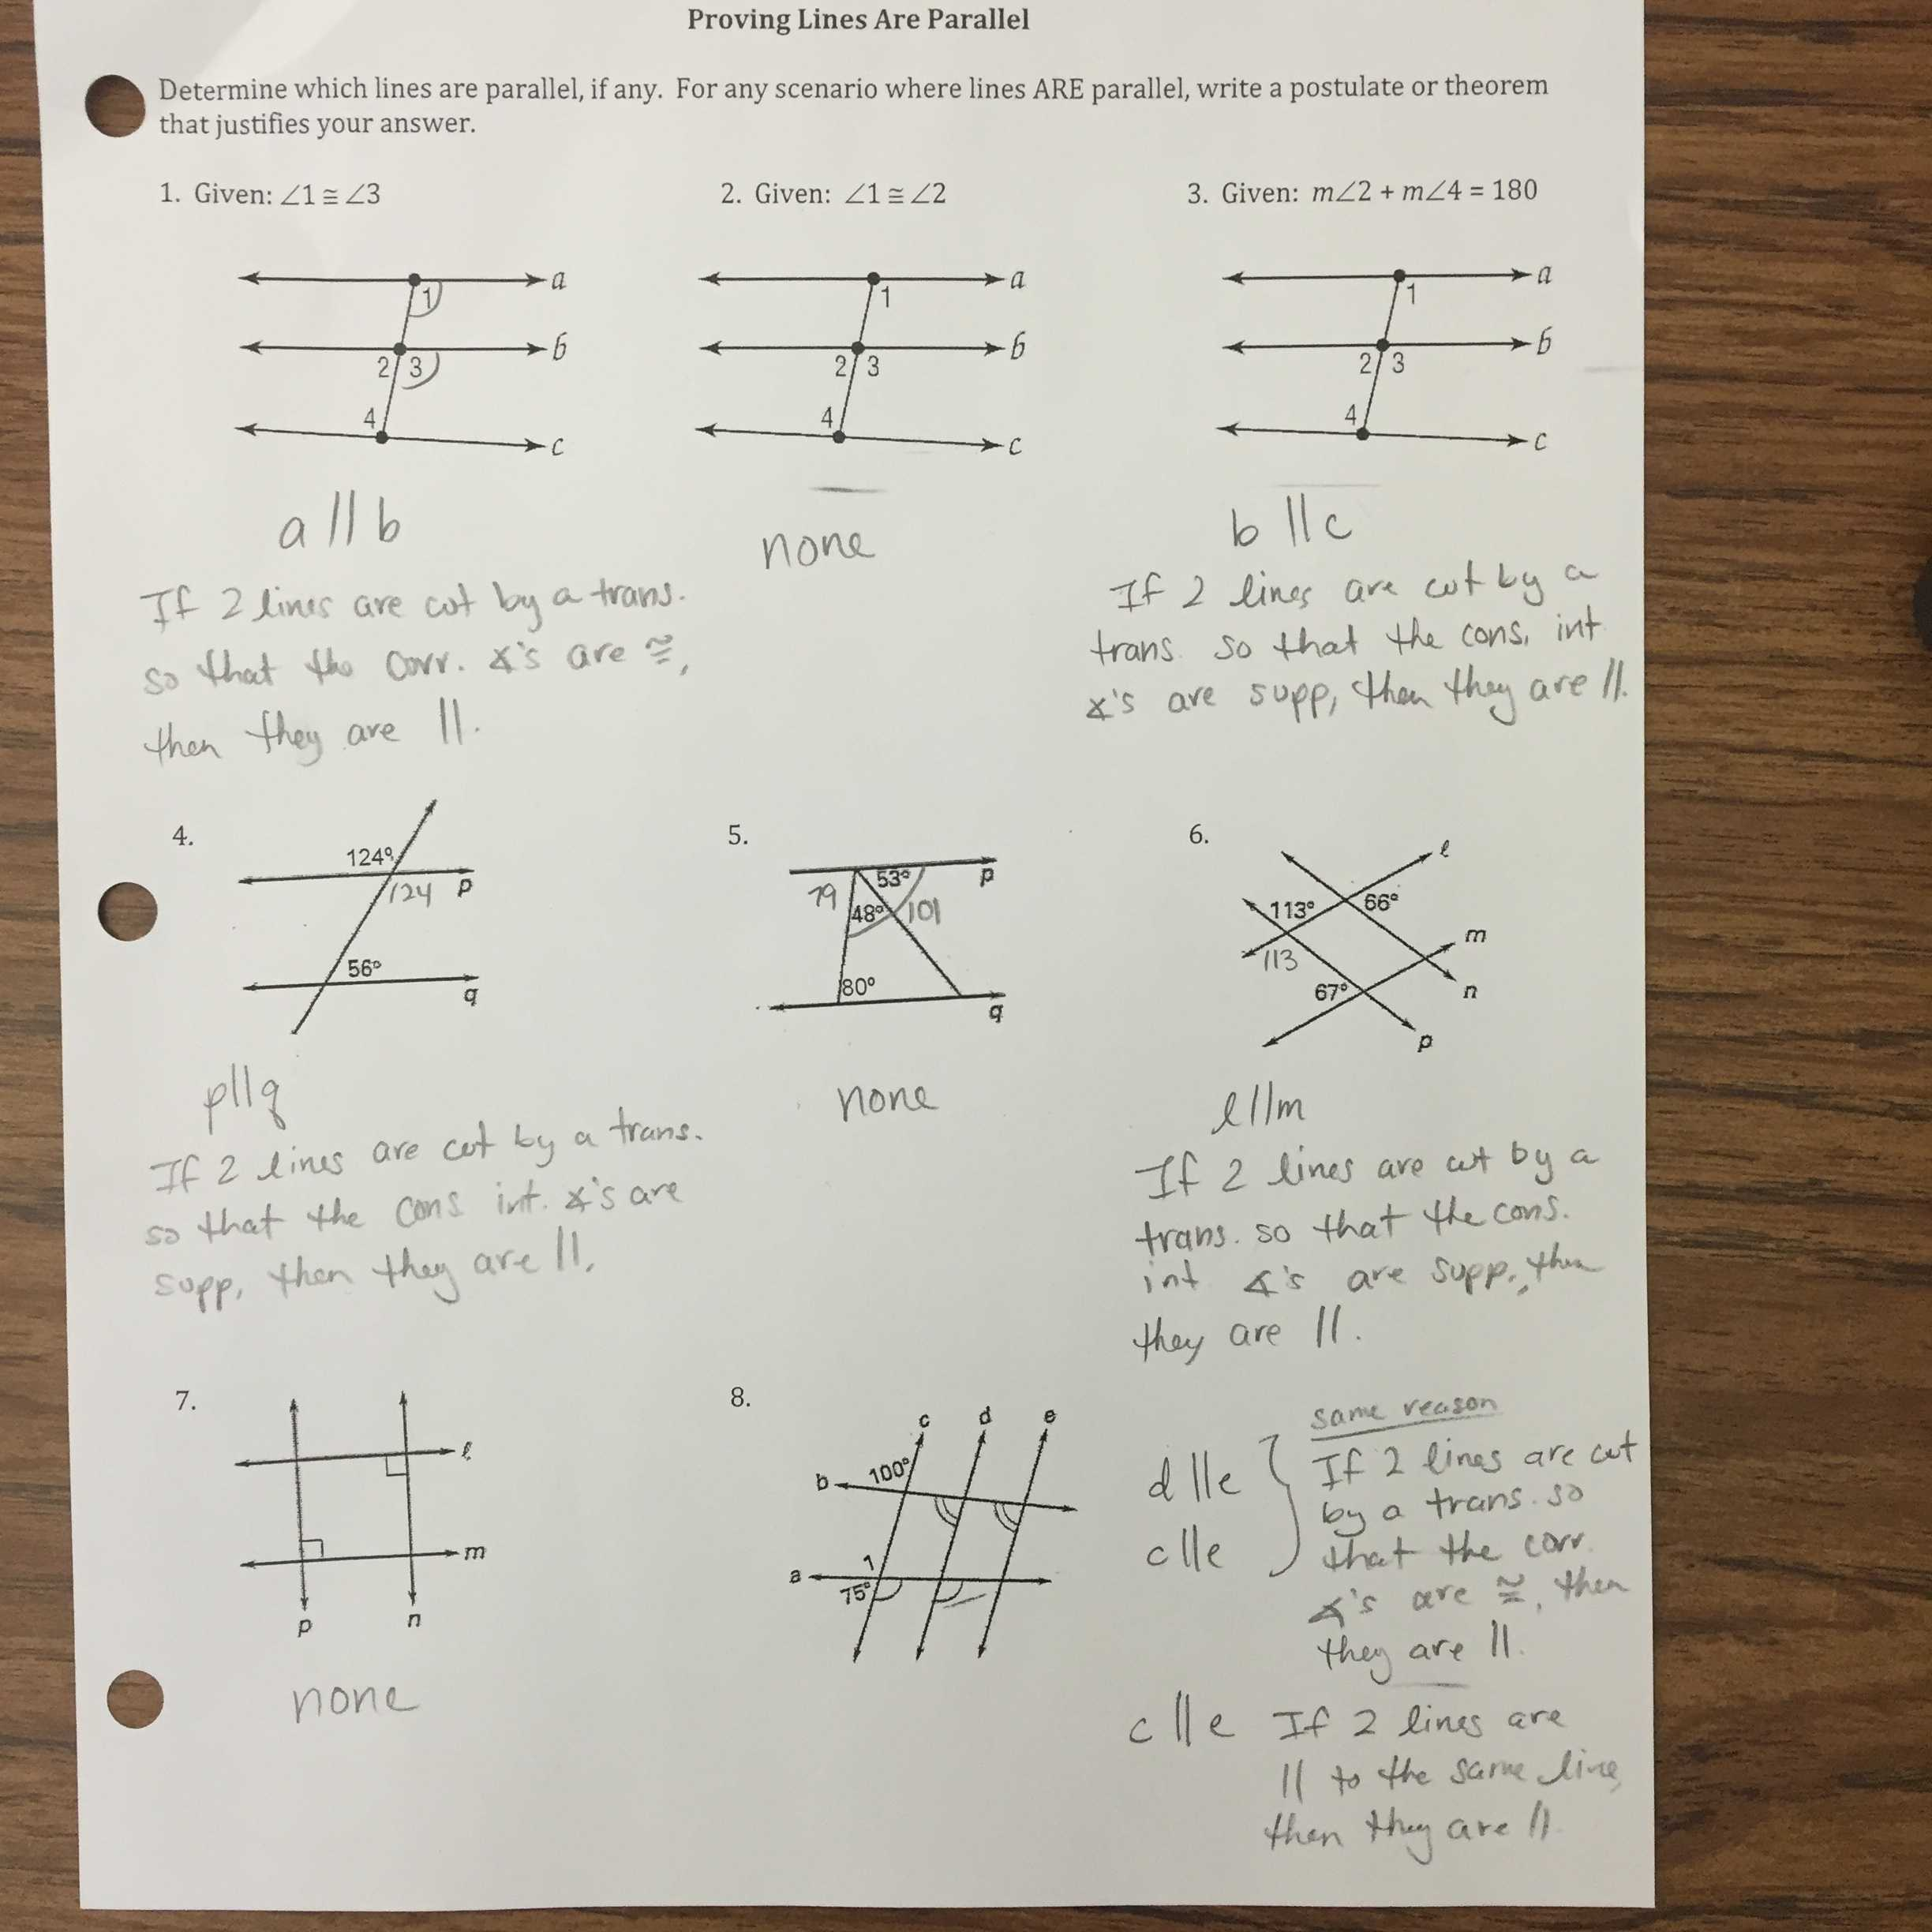 Proving Parallel Lines Worksheet with Answers Also Proving Lines Parallel Worksheet Answers Choice Image Worksheet